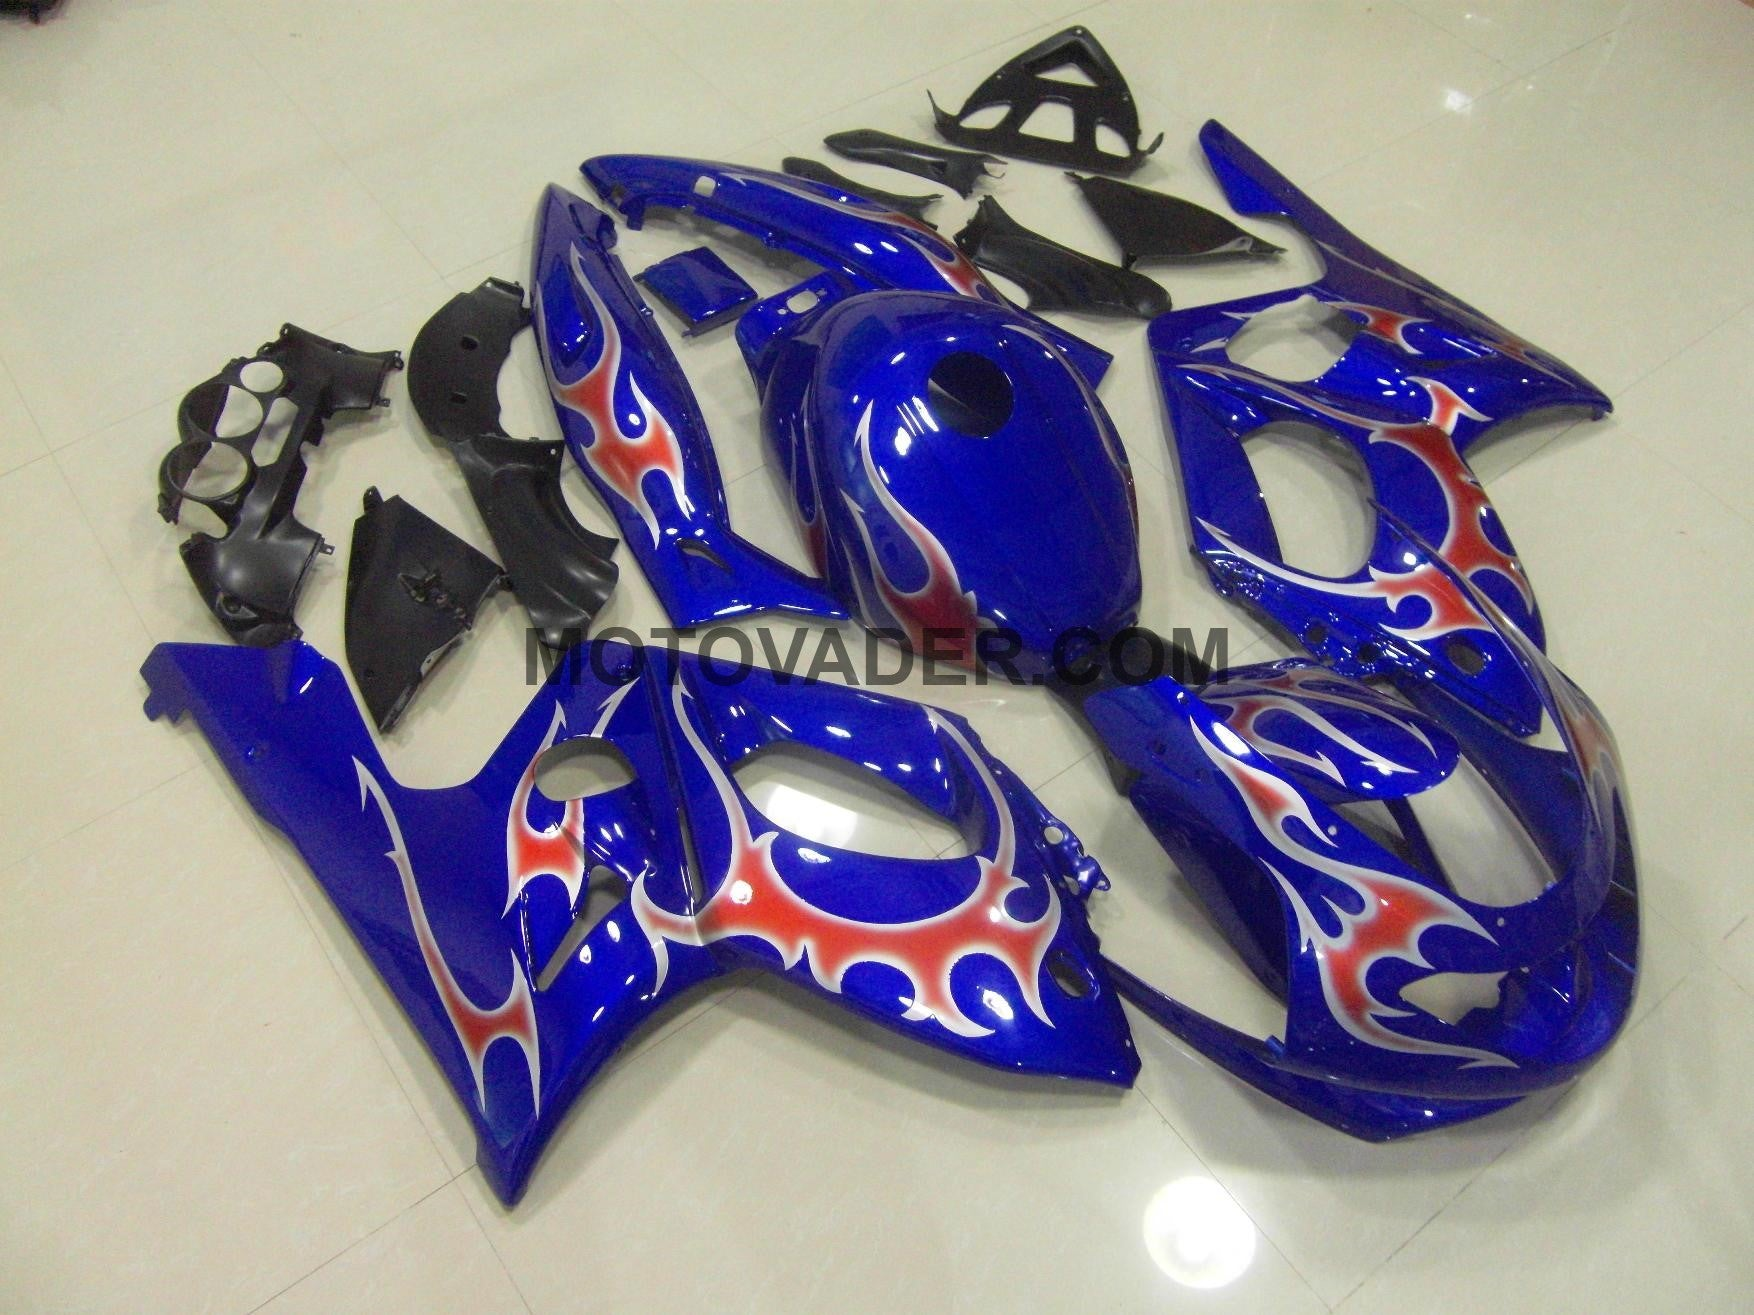 Yamaha YZF 600 1997-2007 Blue With Flames Fairing